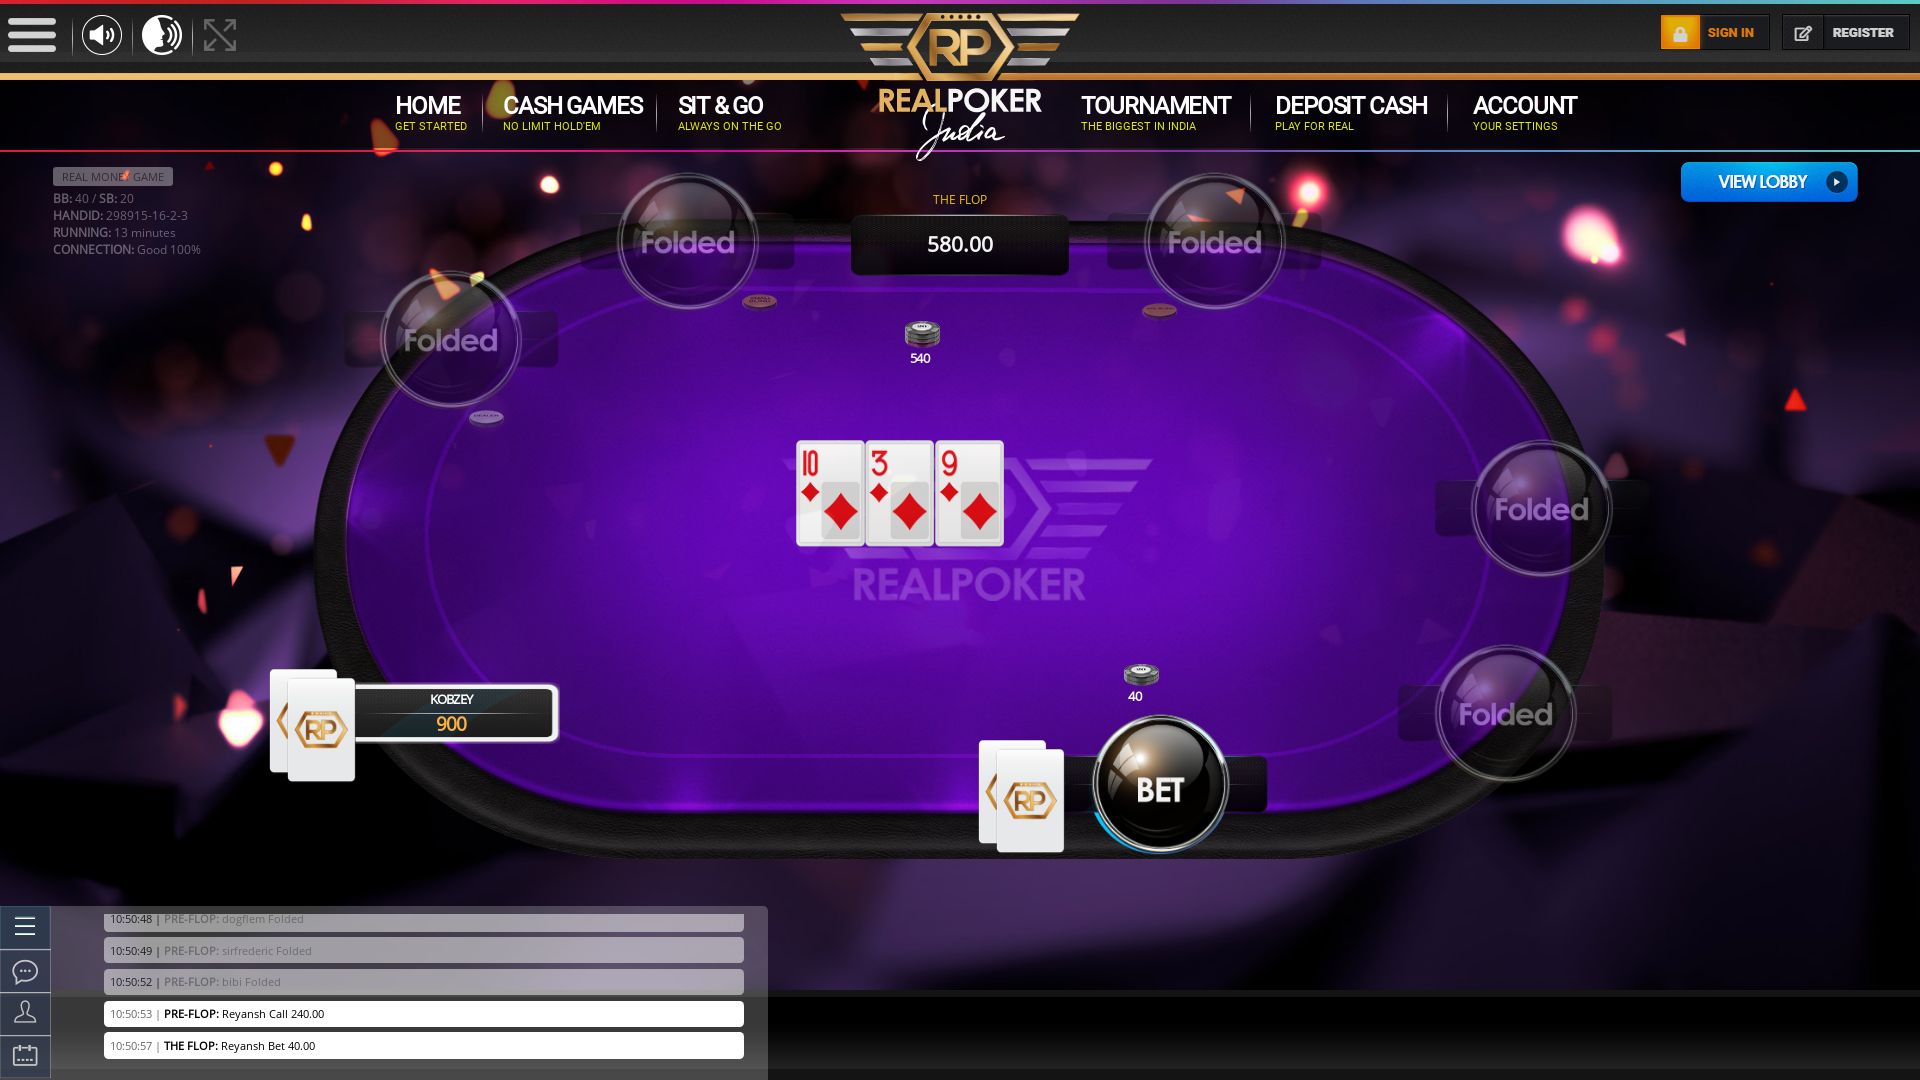 The 16th hand dealt between kobzey, bayramkaya, shadow, bibi, dogflem, sirfrederic, Reyansh,